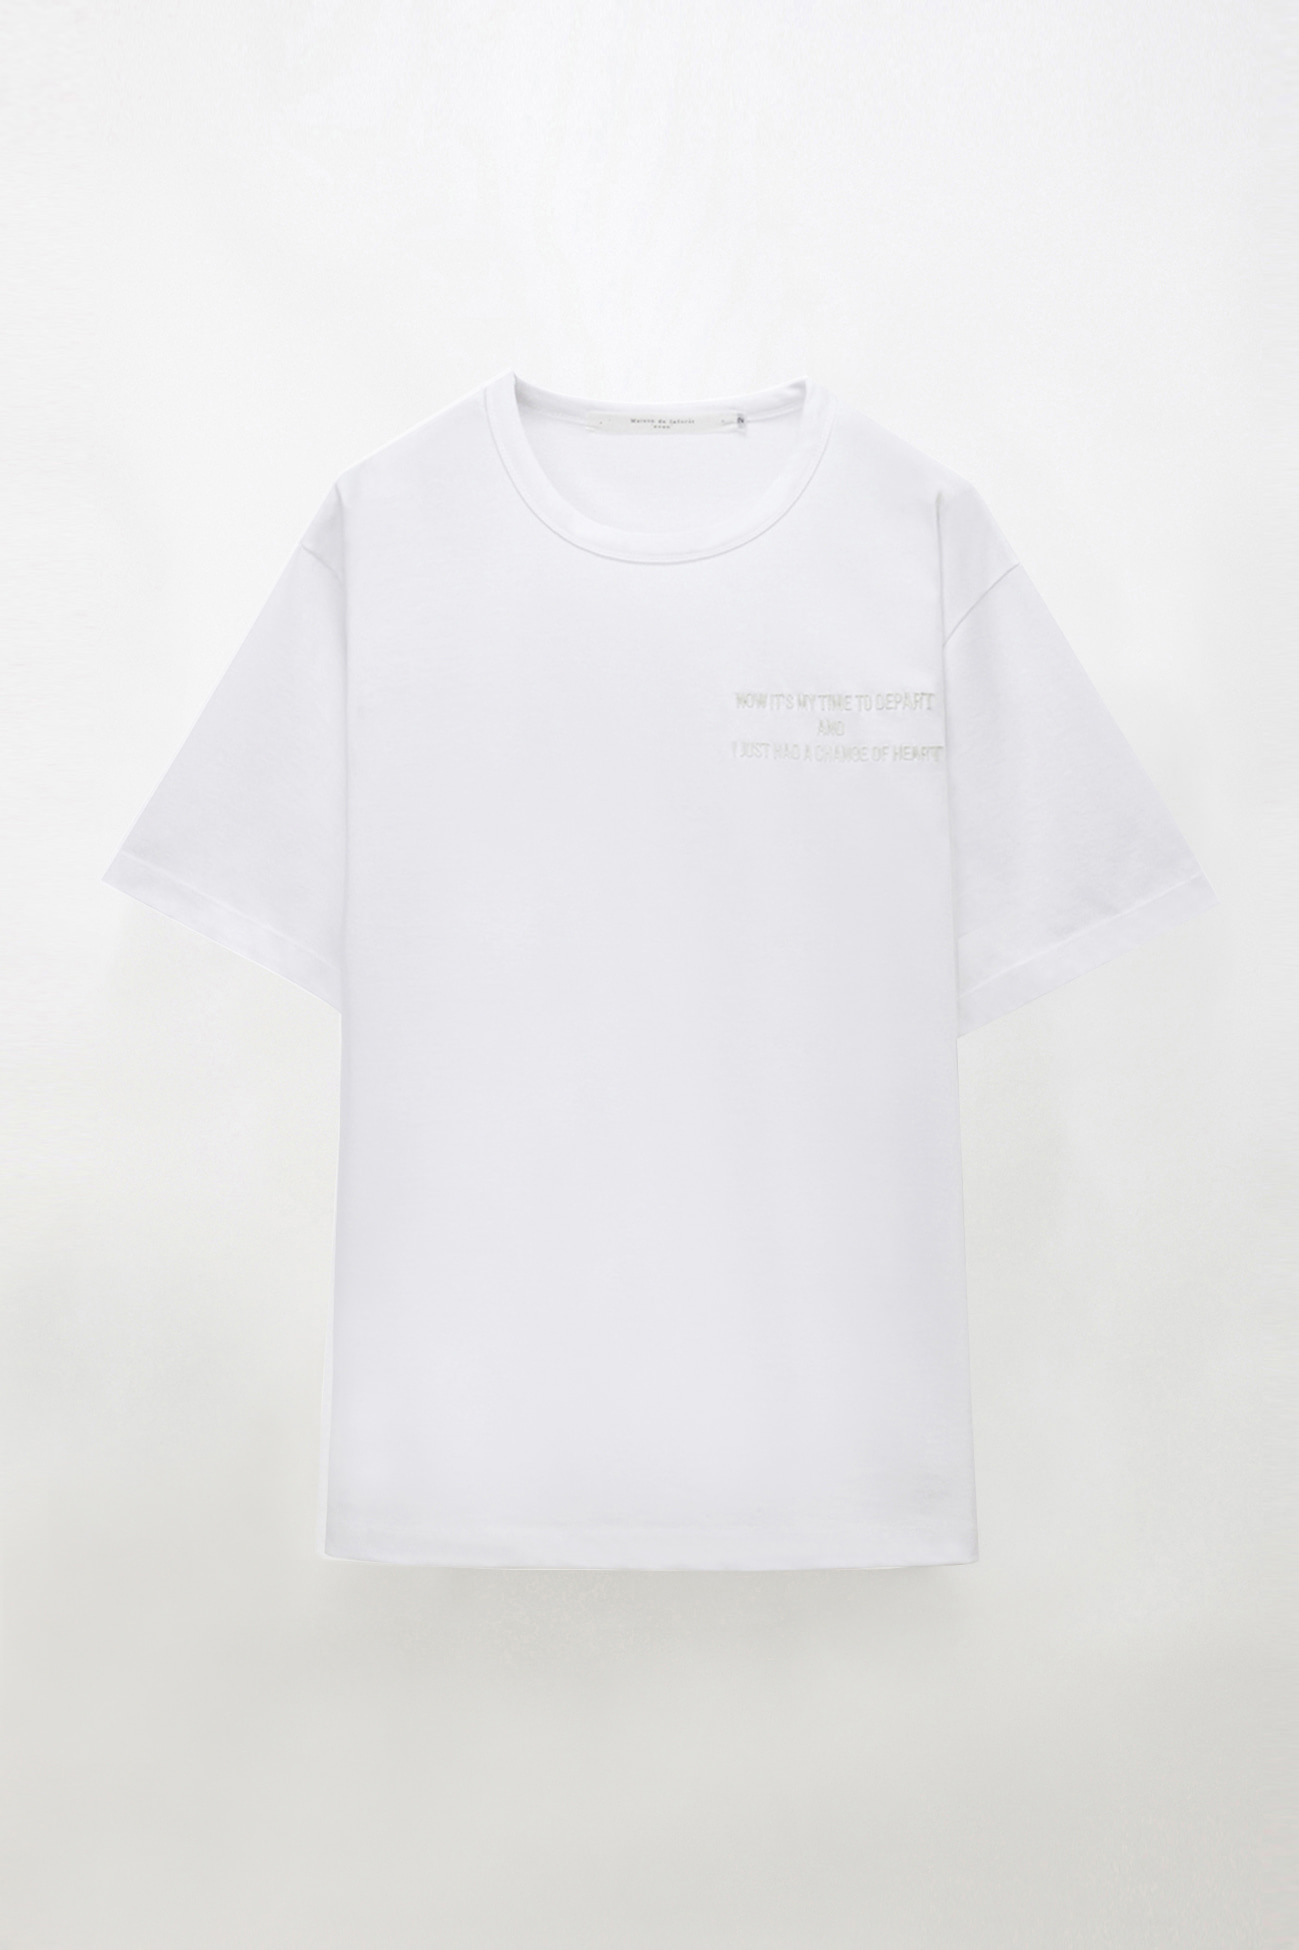 OVERSIZED HEART LETTERING T WHITE